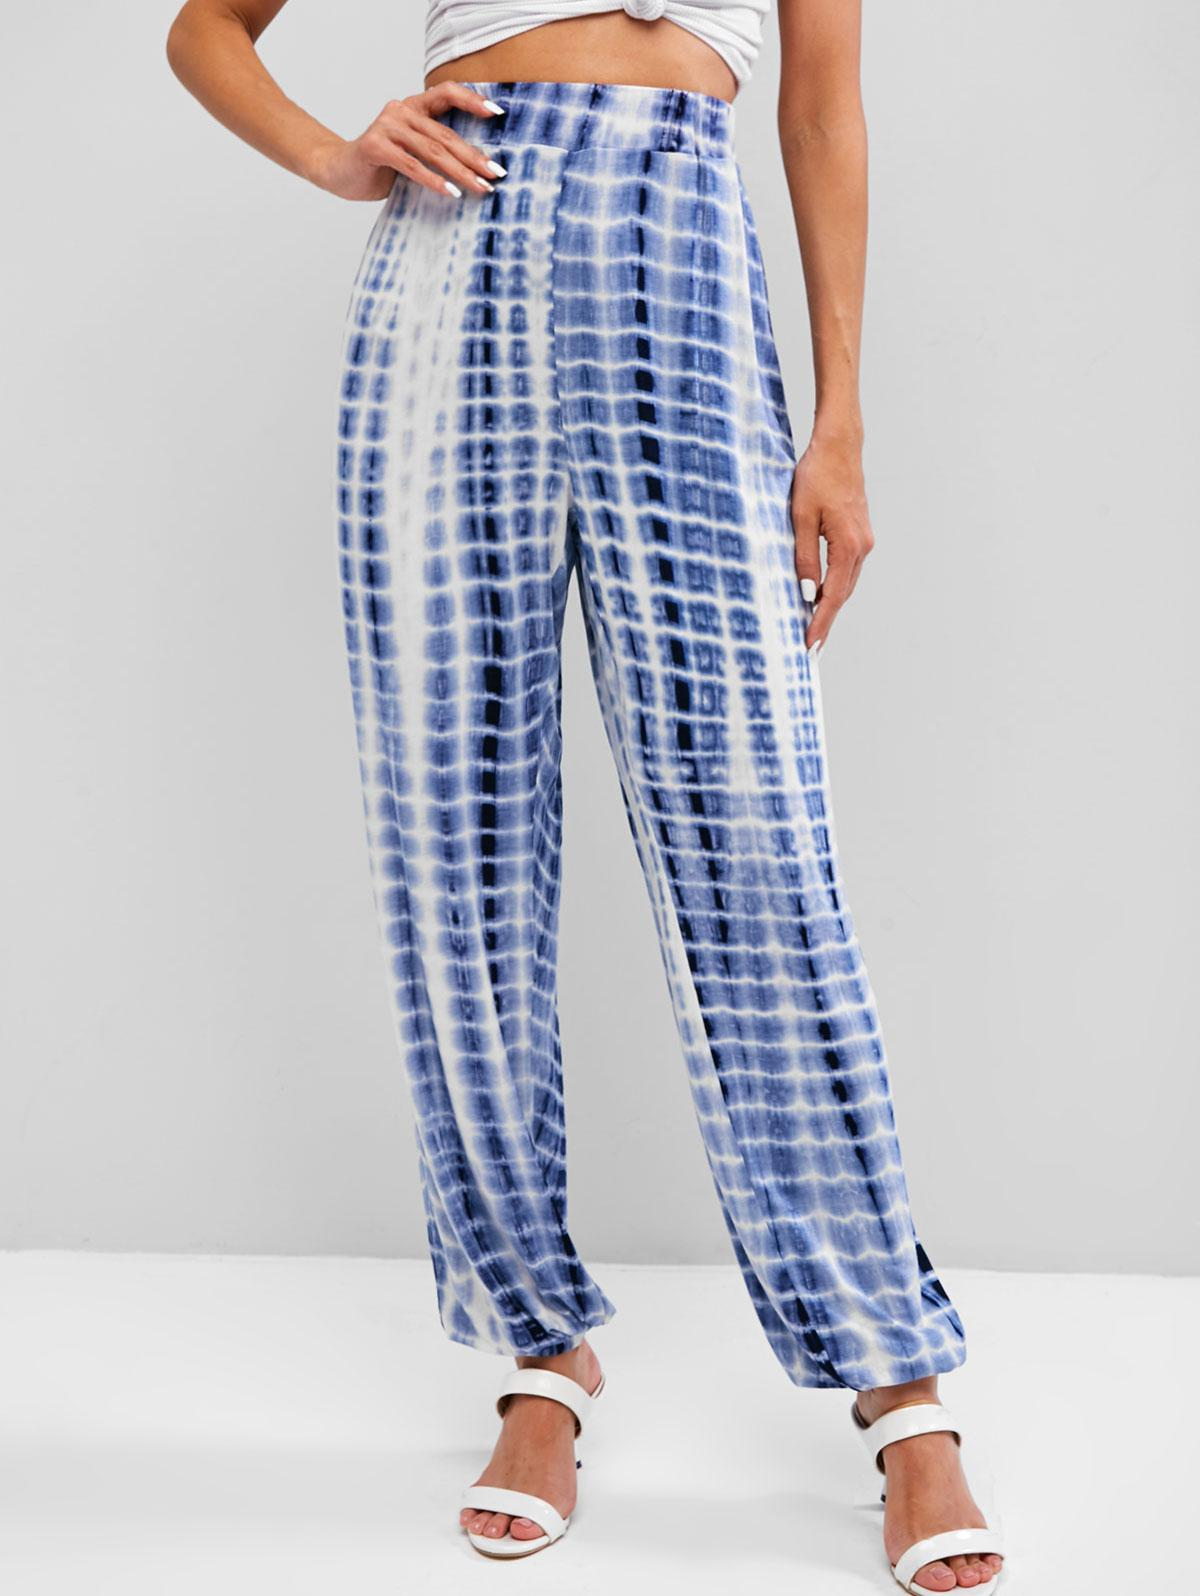 High Waisted Tie Dye Jogger Pants